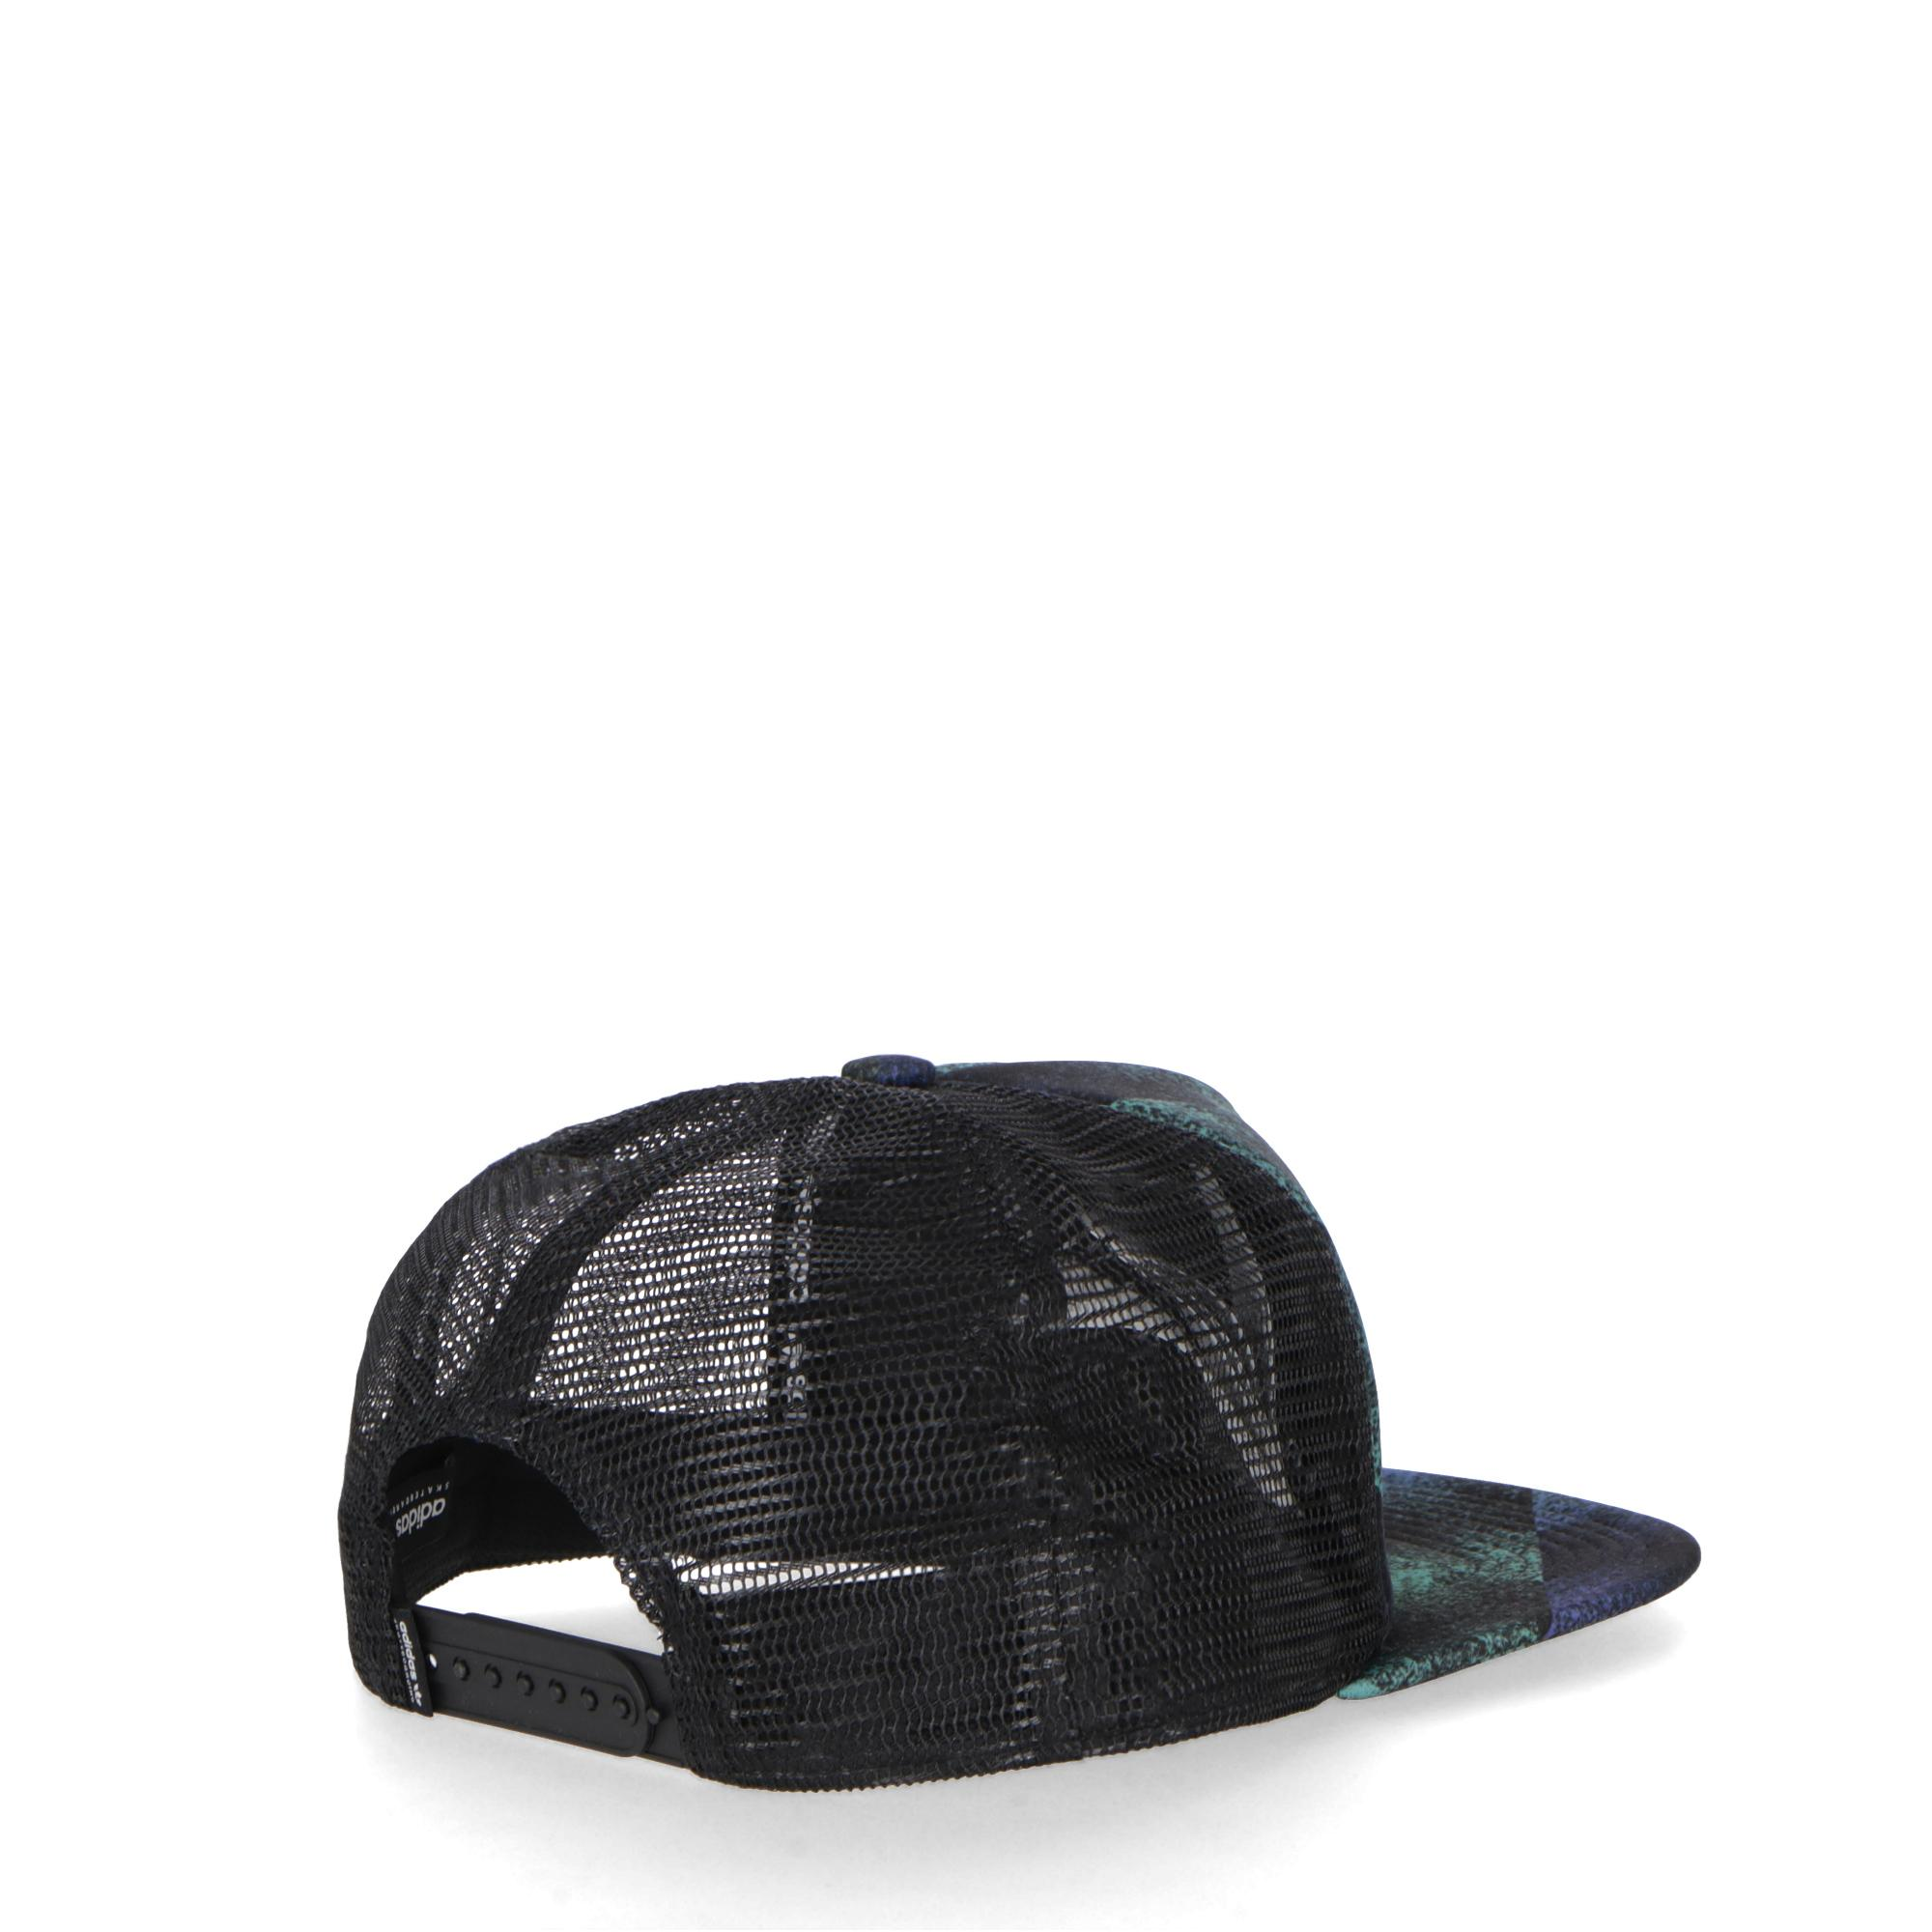 30f76e062413c Adidas Towning Trucker Hat br   Multicolor